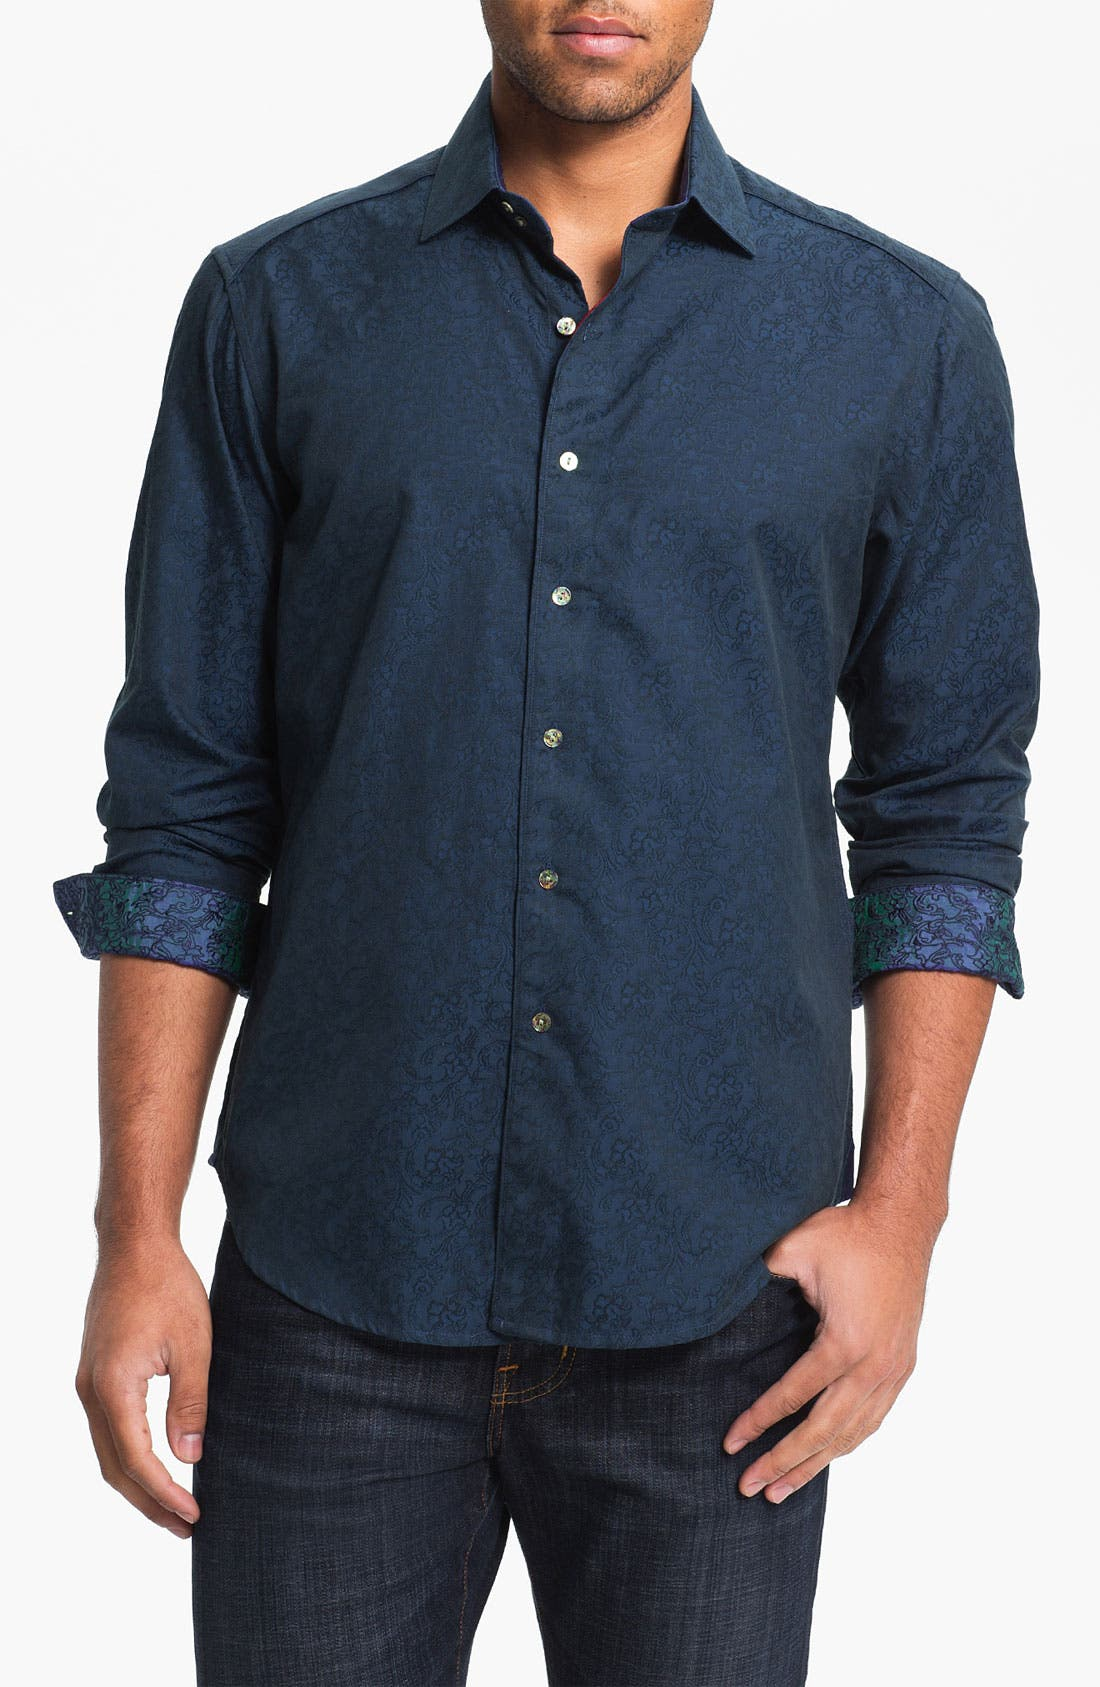 Alternate Image 1 Selected - Robert Graham 'Back Flip' Sport Shirt